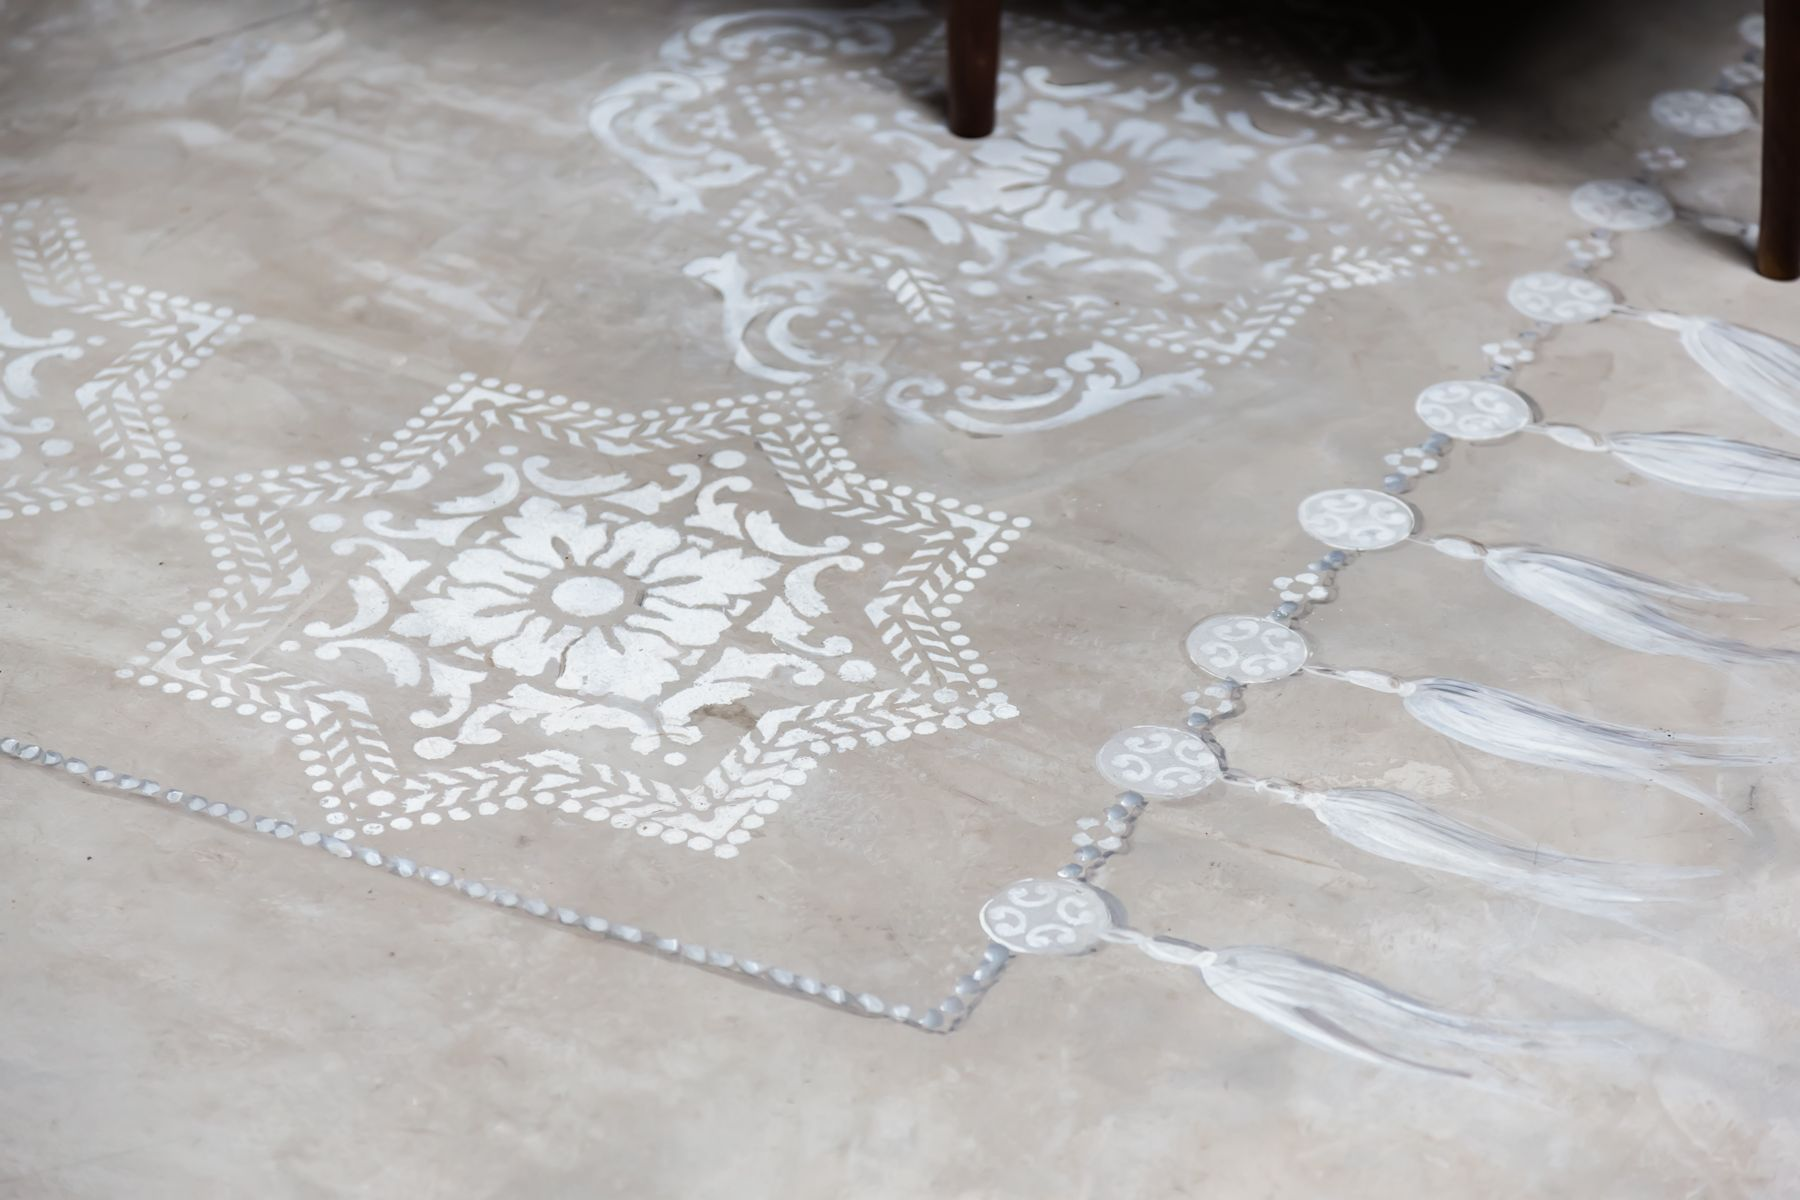 Portico Alfombras Lisboa Tile Stencil Stenciled And Painted Floors Pisos